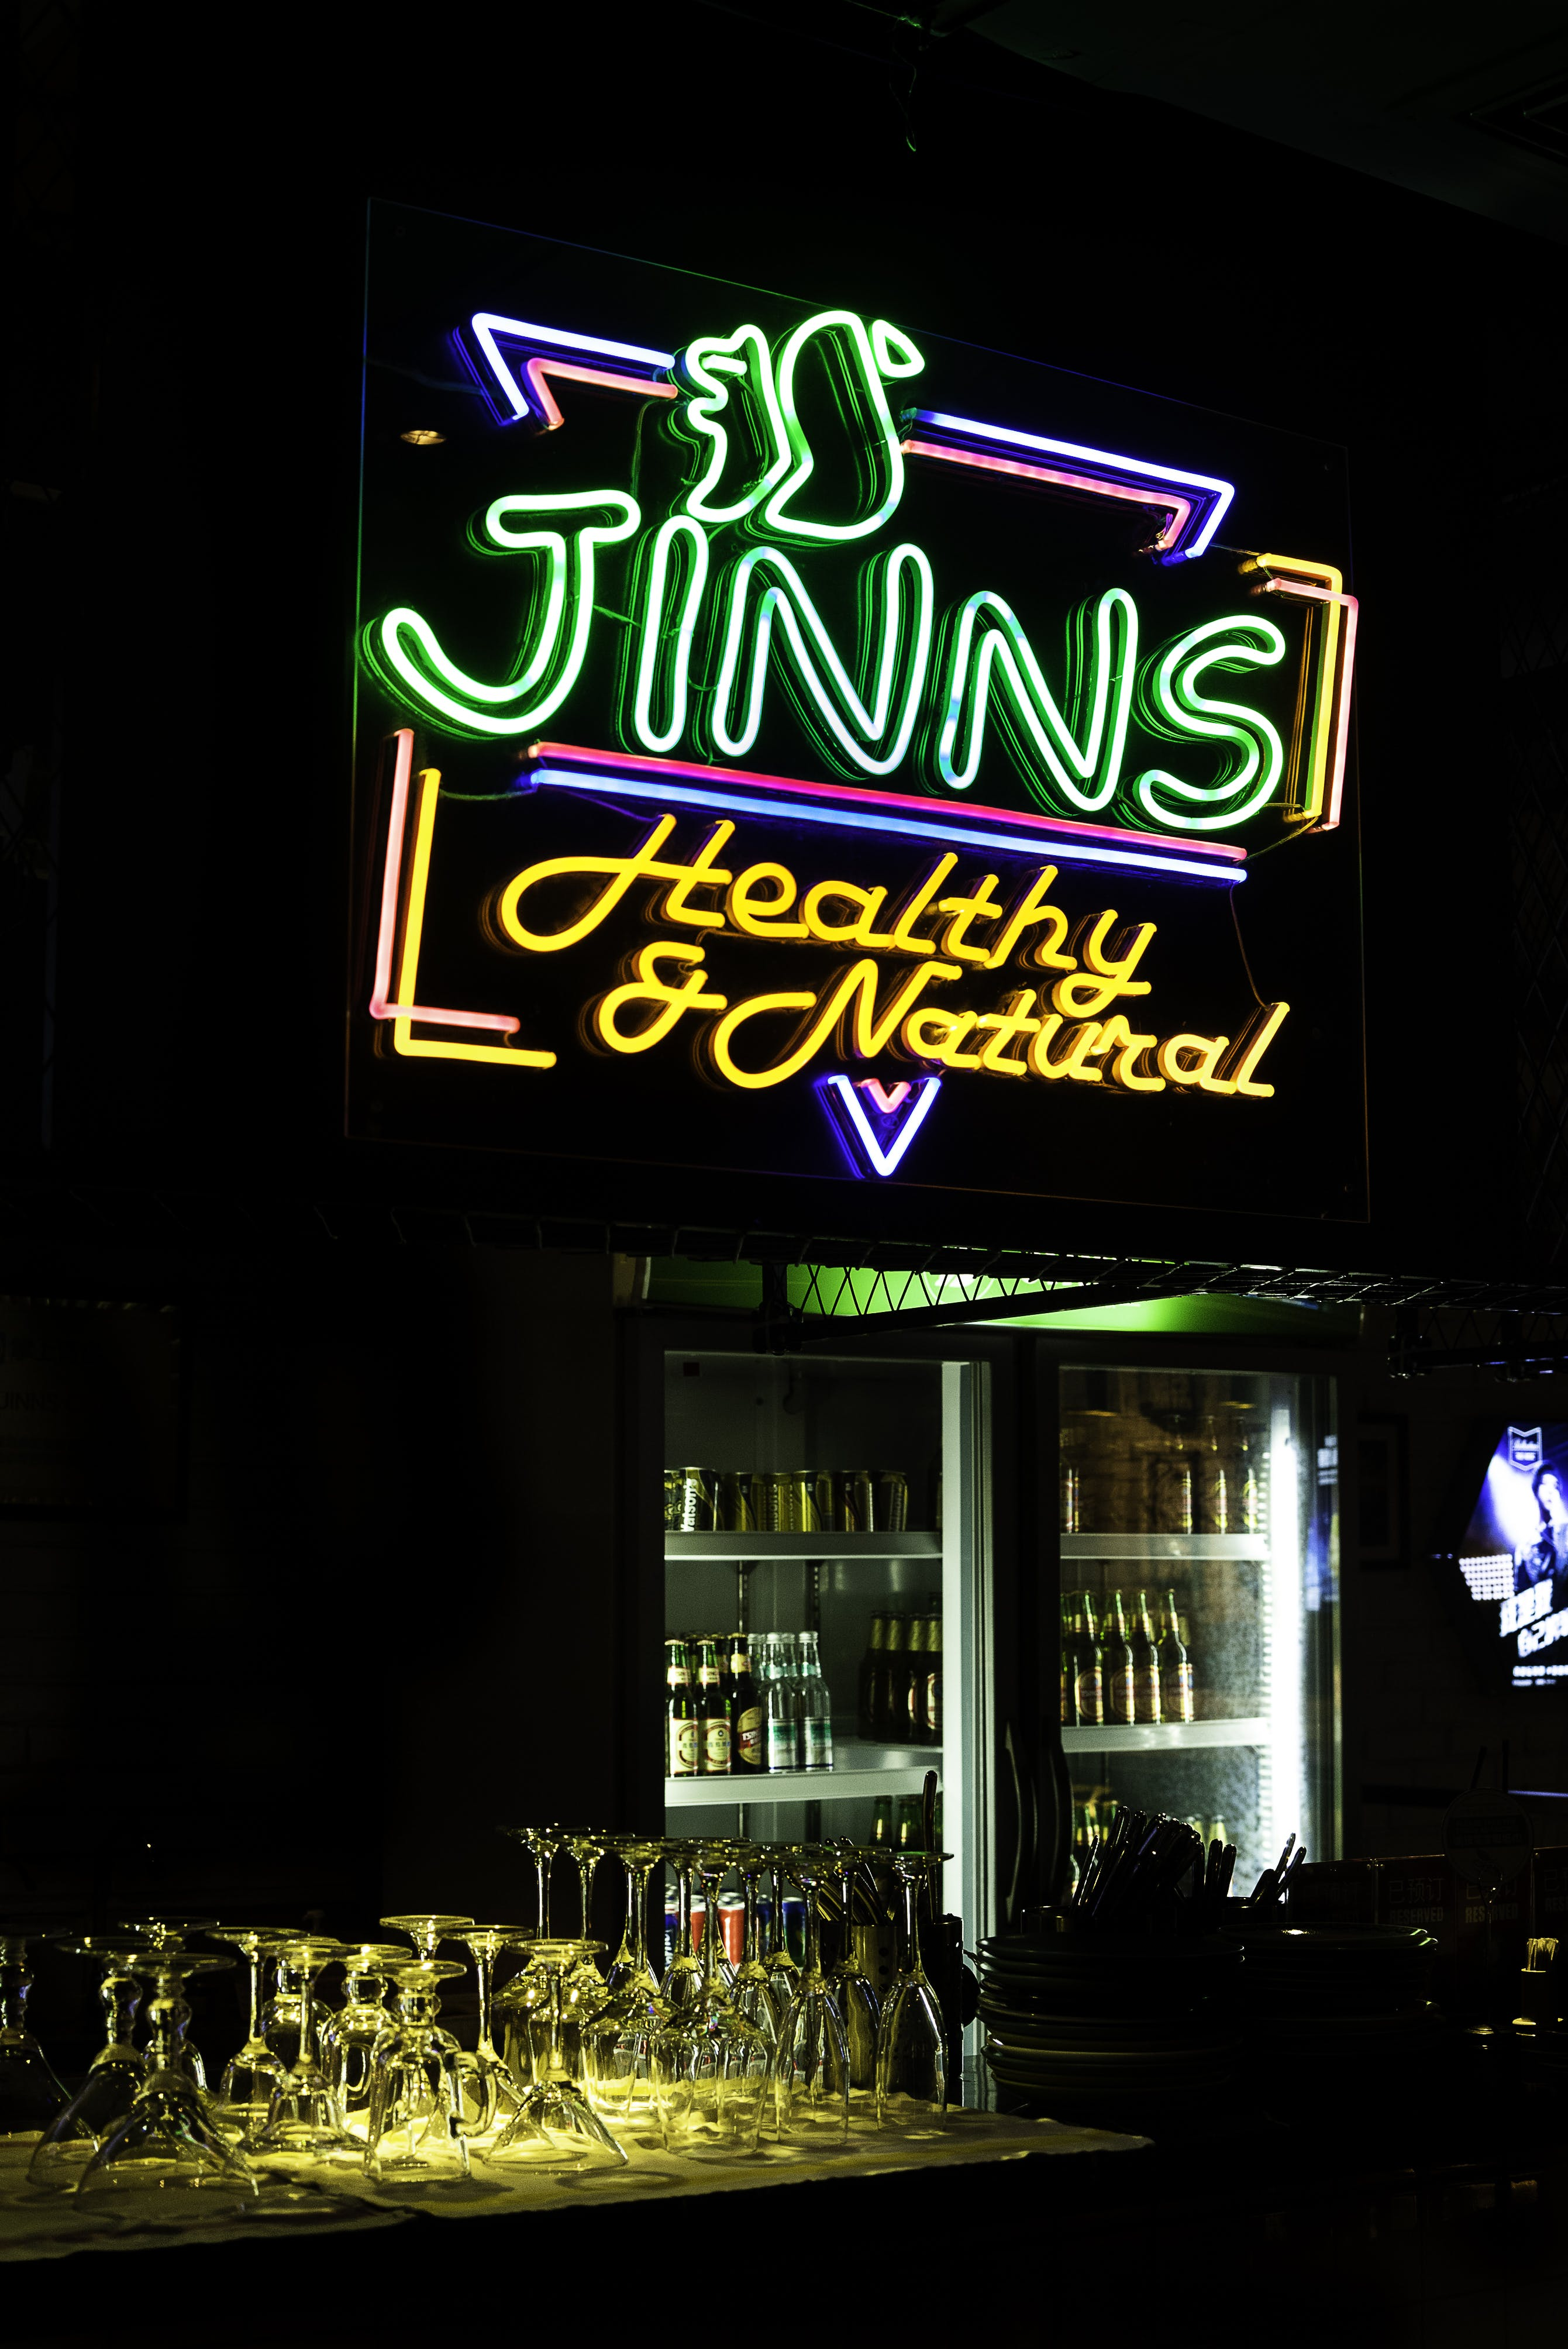 Jinns Healthy and Natural Neon Light Signage